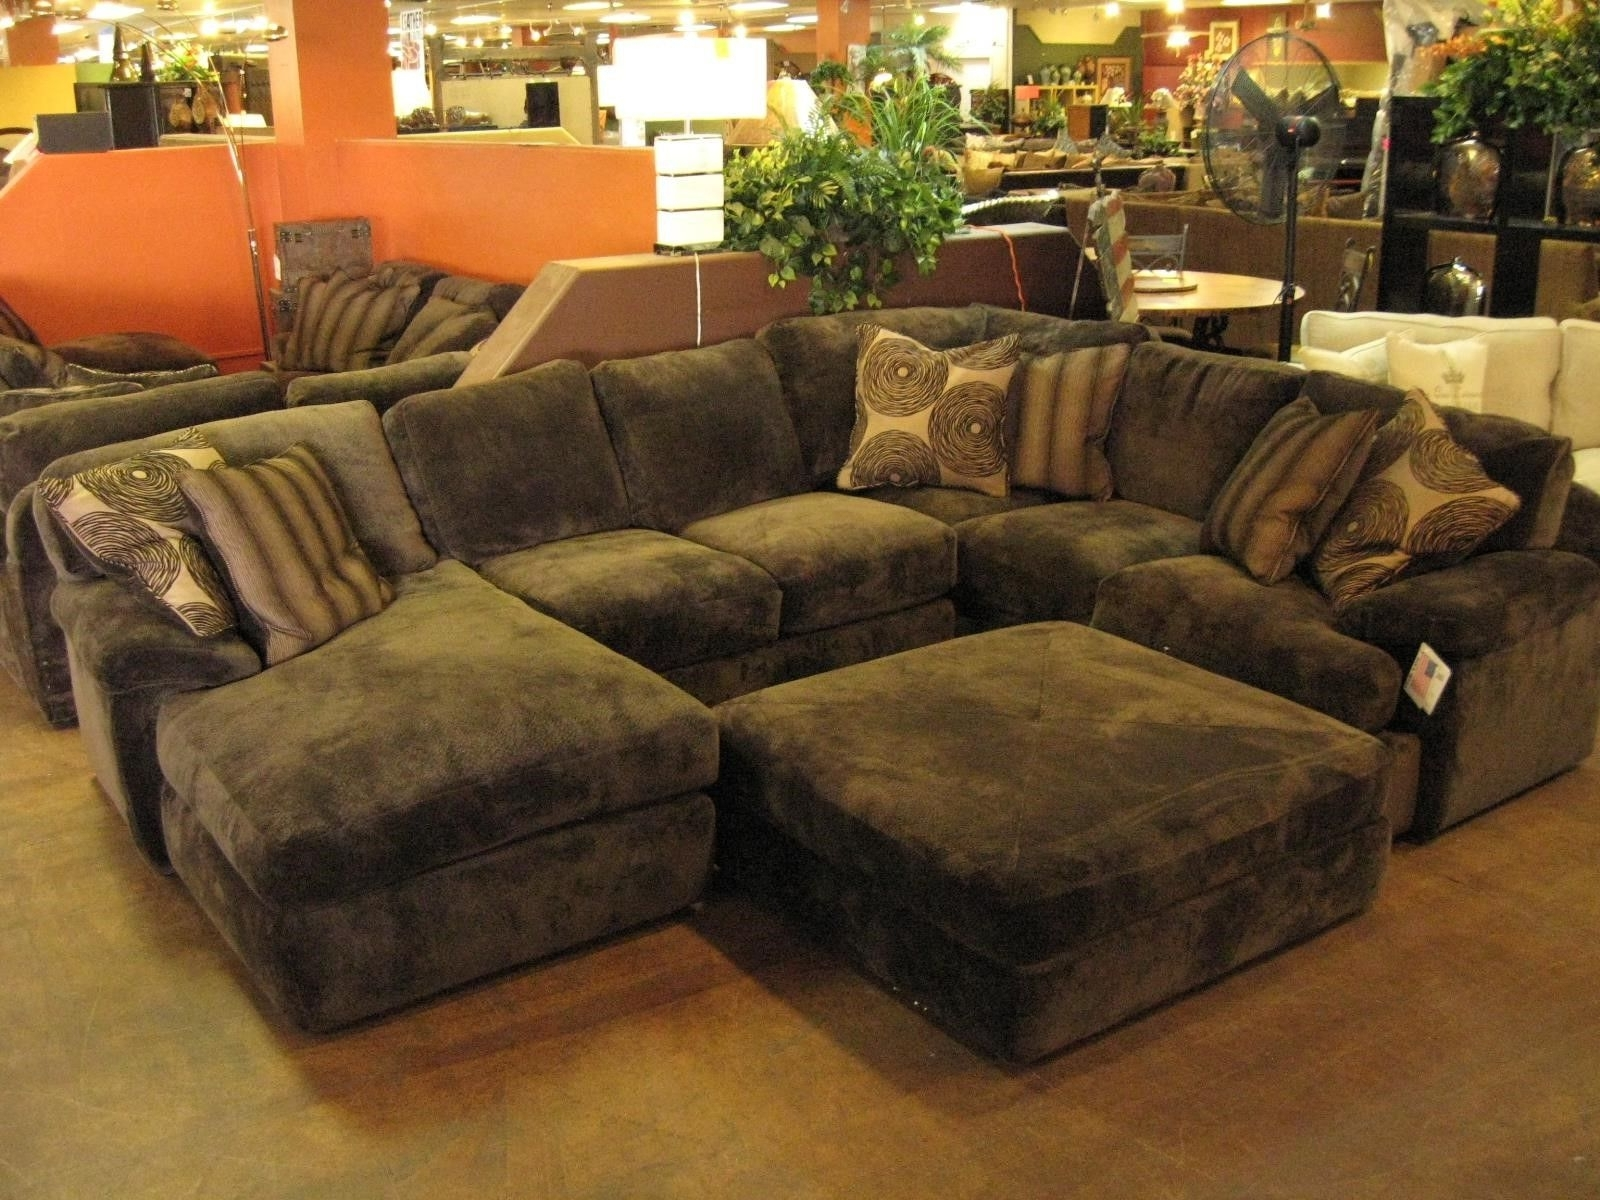 Oversized Sectional Sofas With Chaise Intended For Latest Furniture: Interesting Living Room Interior Using Large Sectional (View 3 of 15)